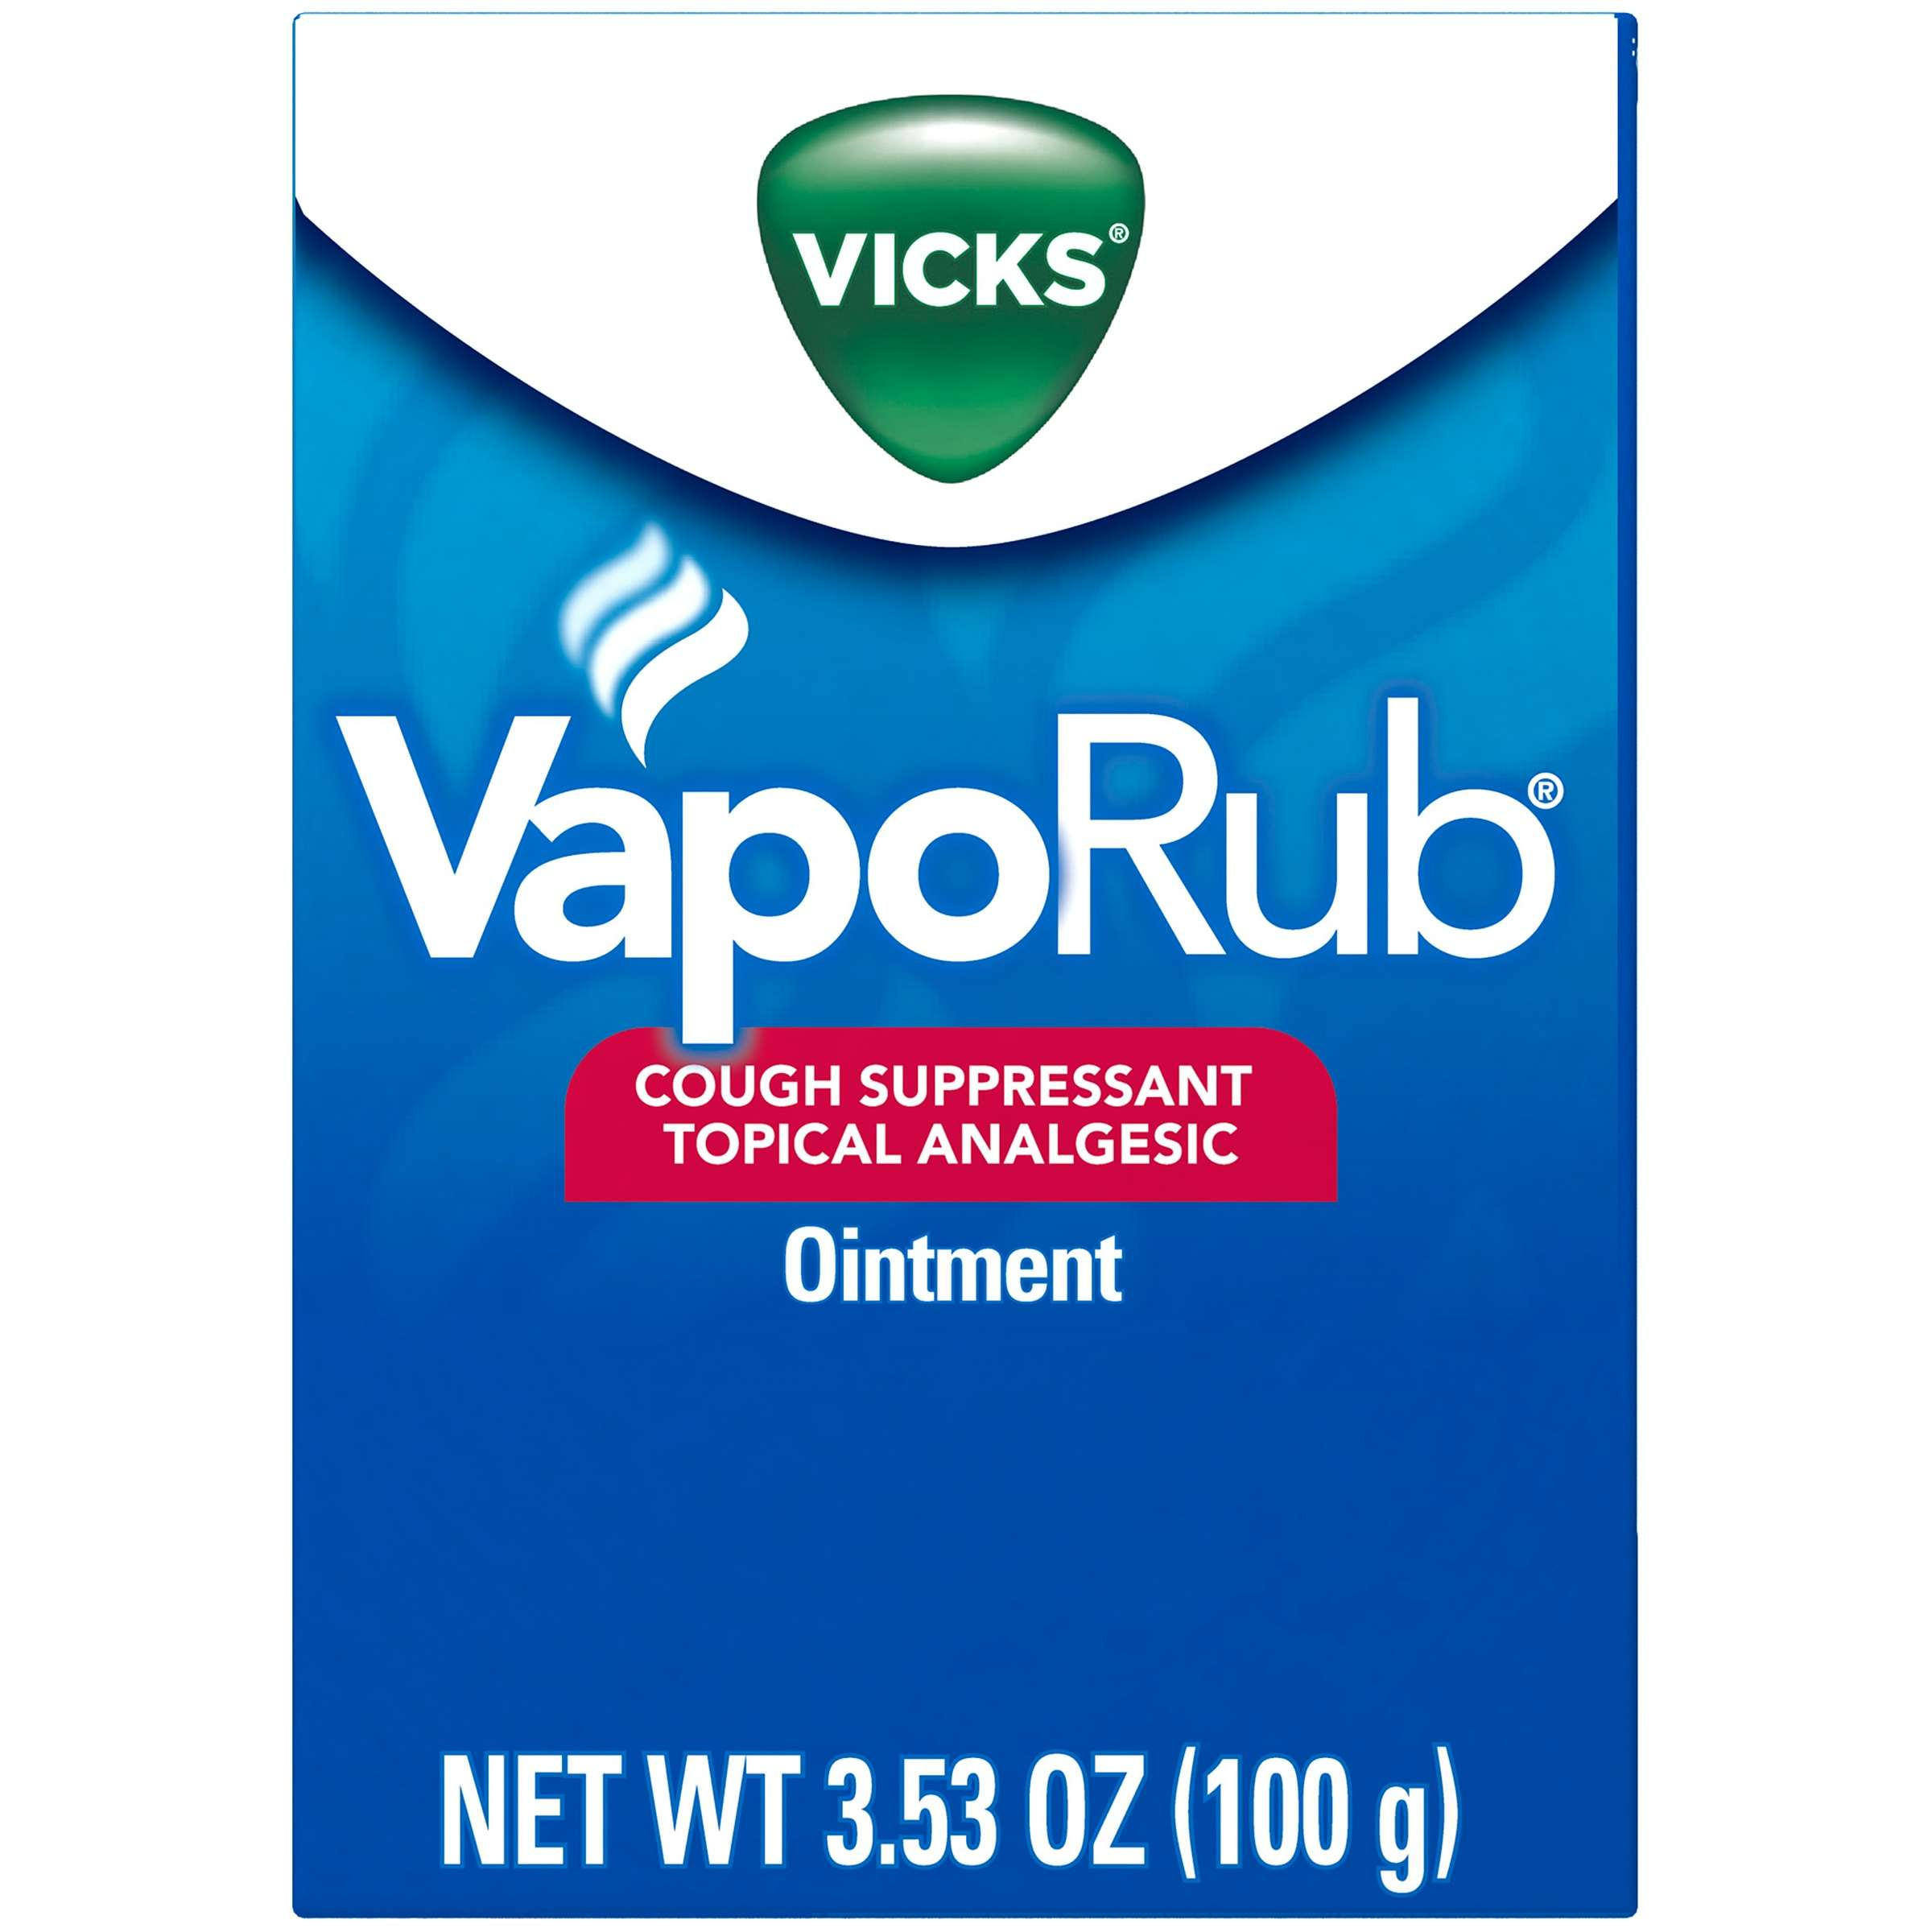 Vicks VapoRub Chest Rub Ointment for Relief from Cough, Cold, Aches, and Pains, with Original Medicated Vicks Vapors, 3.53 oz